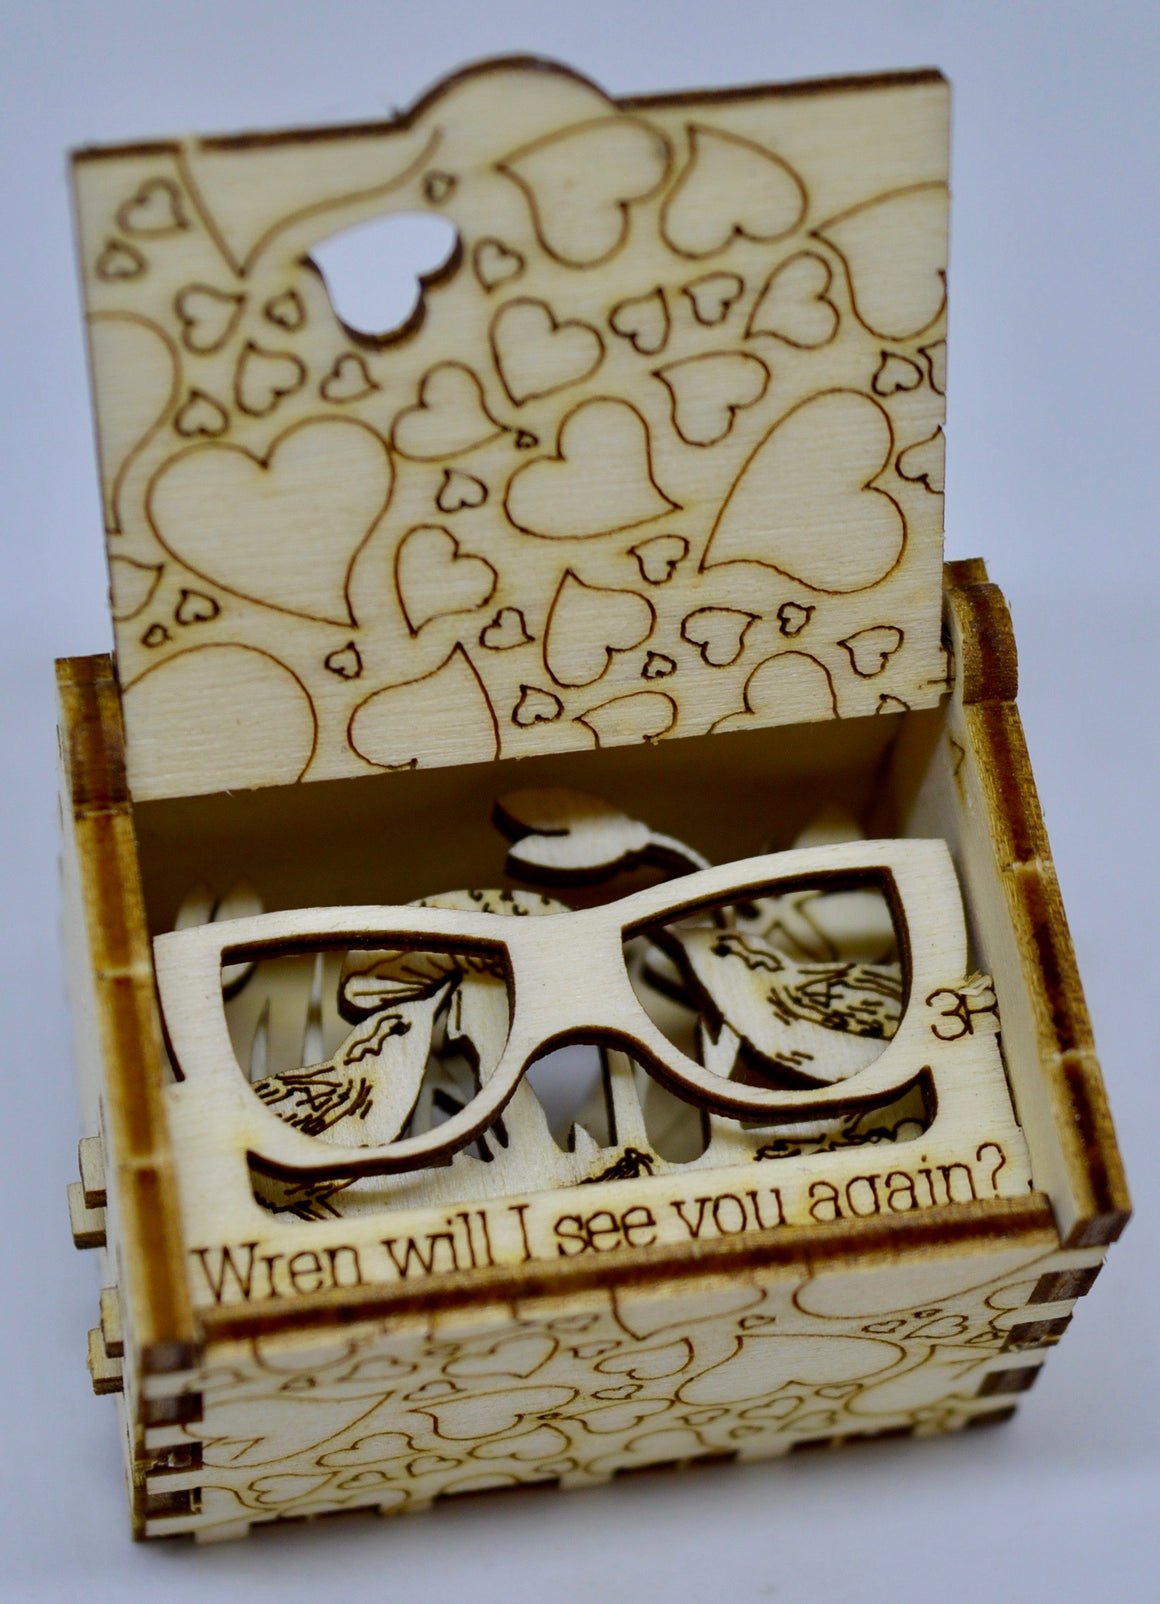 Pop Up Wooden 3D Card. Box silhouette.Wren will I see you again. Box.20